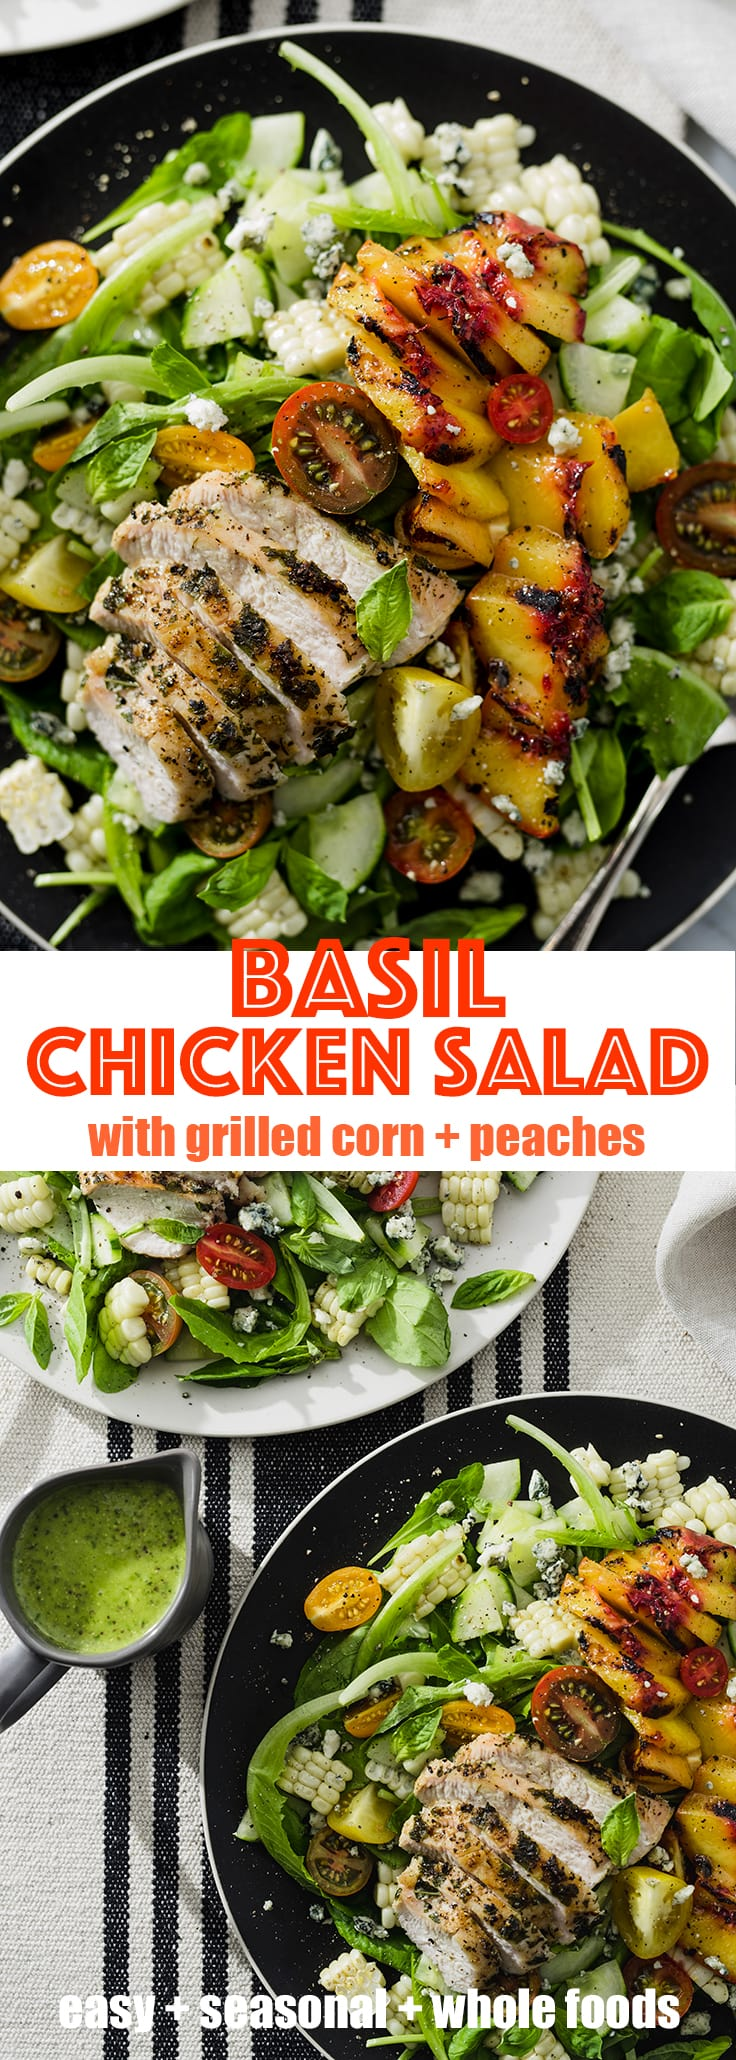 This basil chicken salad is a nutritious and flavorful way to use up an abundance of fresh basil. Packed with nutrition, a punch of protein, and naturally gluten-free. Check my recipe archive for more easy, seasonal, whole food recipes. #wholefood #realfood #glutenfree #recipe